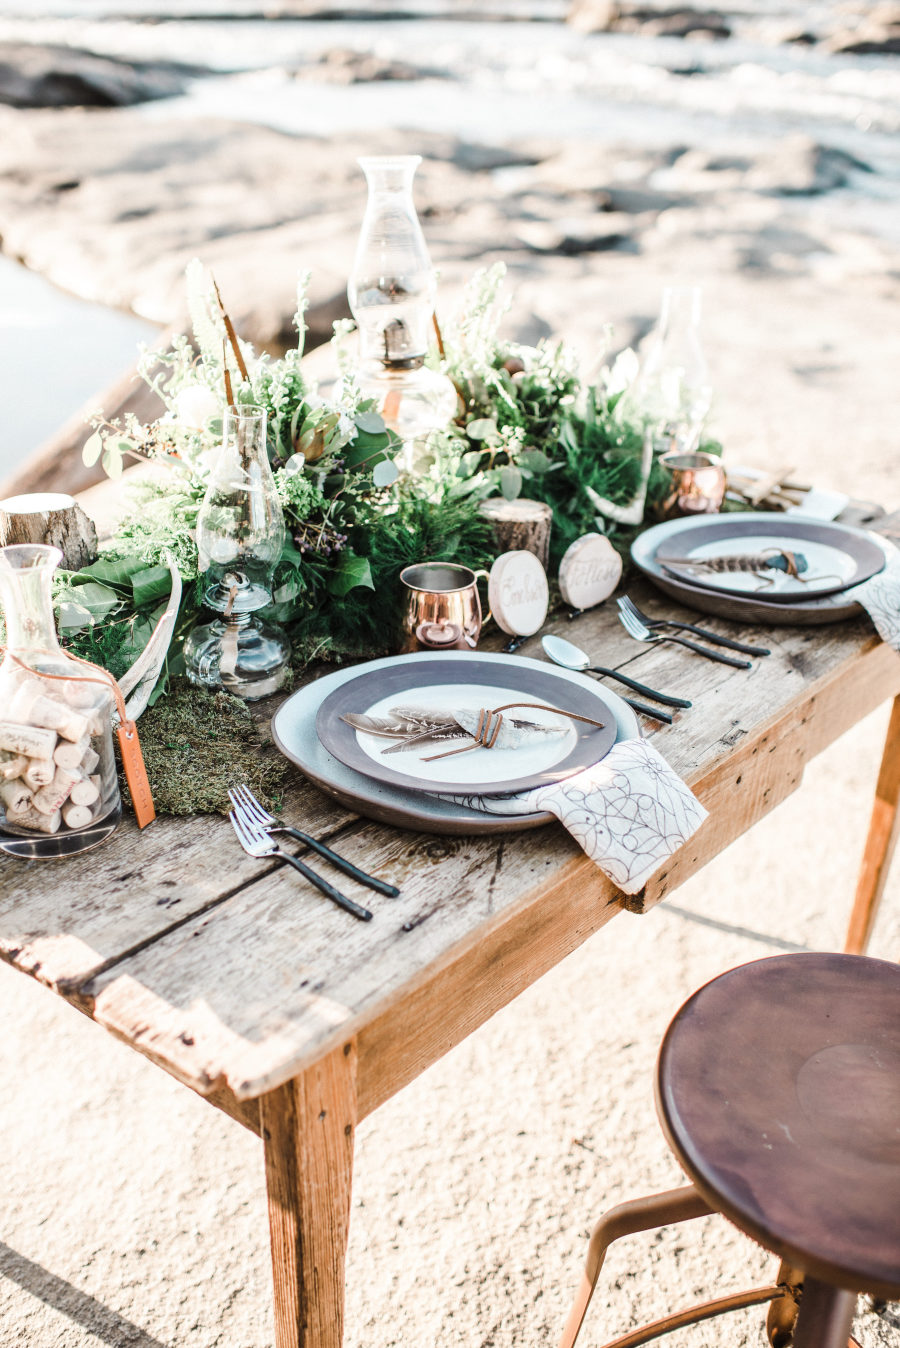 a gorgeous textural greenery wedding centerpiece with little stumps, moss, antlers and an oil lamp for a woodland or nature inspired wedding